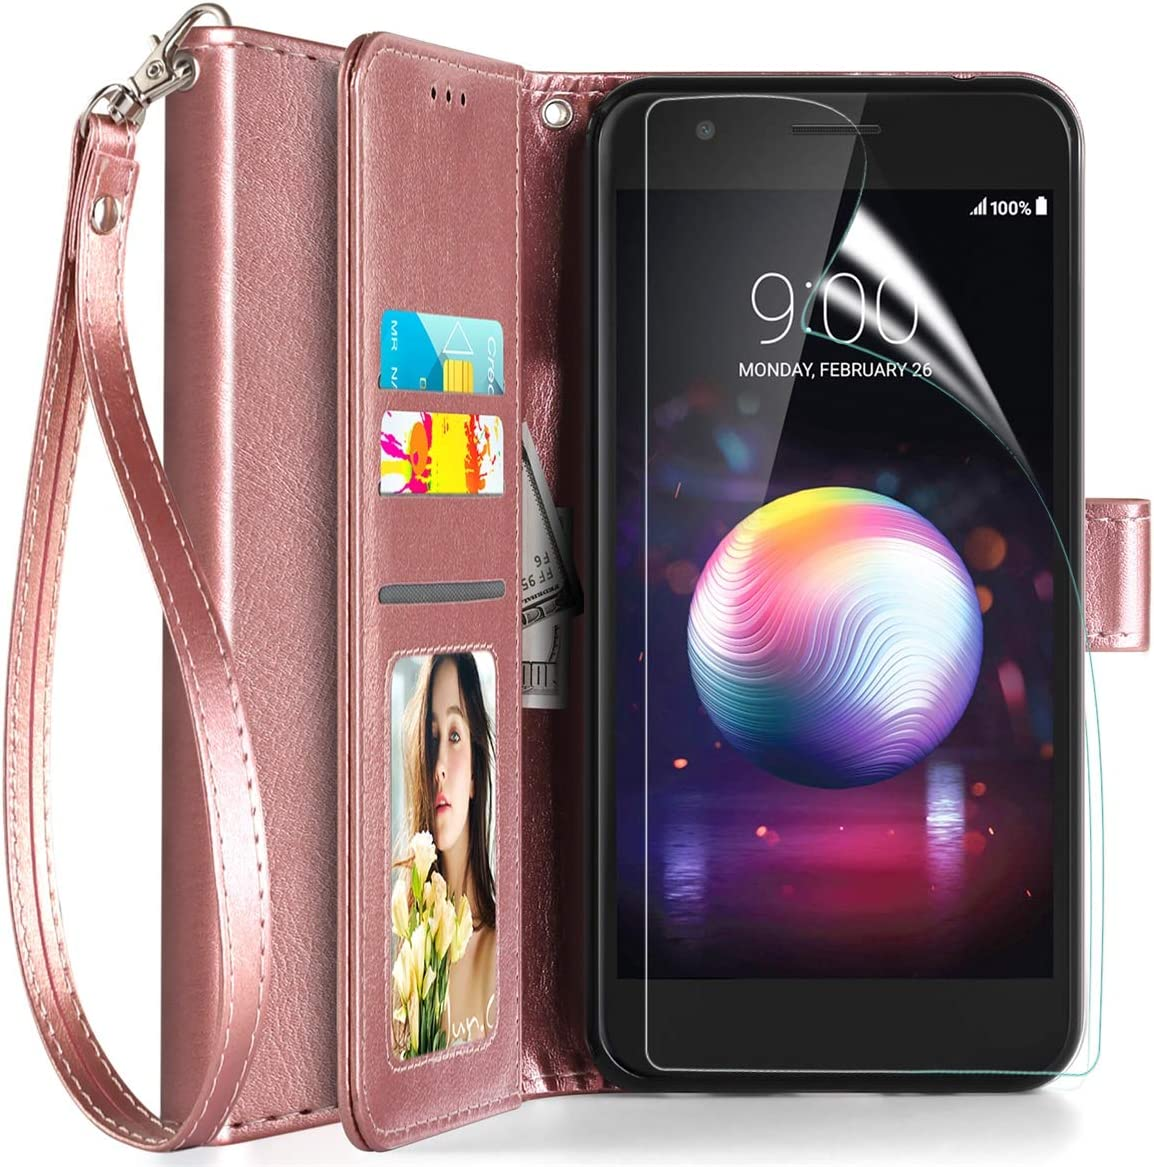 Axiay LG Aristo 2/Aristo 3 Case Wallet,LG Aristo 3 Plus/Tribute Empire/K8+/Fortune 2 Phone Case w Screen Protector,Kickstand Magnetic Card Slots Wrist Strap Flip Folio Shockproof Leather Case,RoseGold